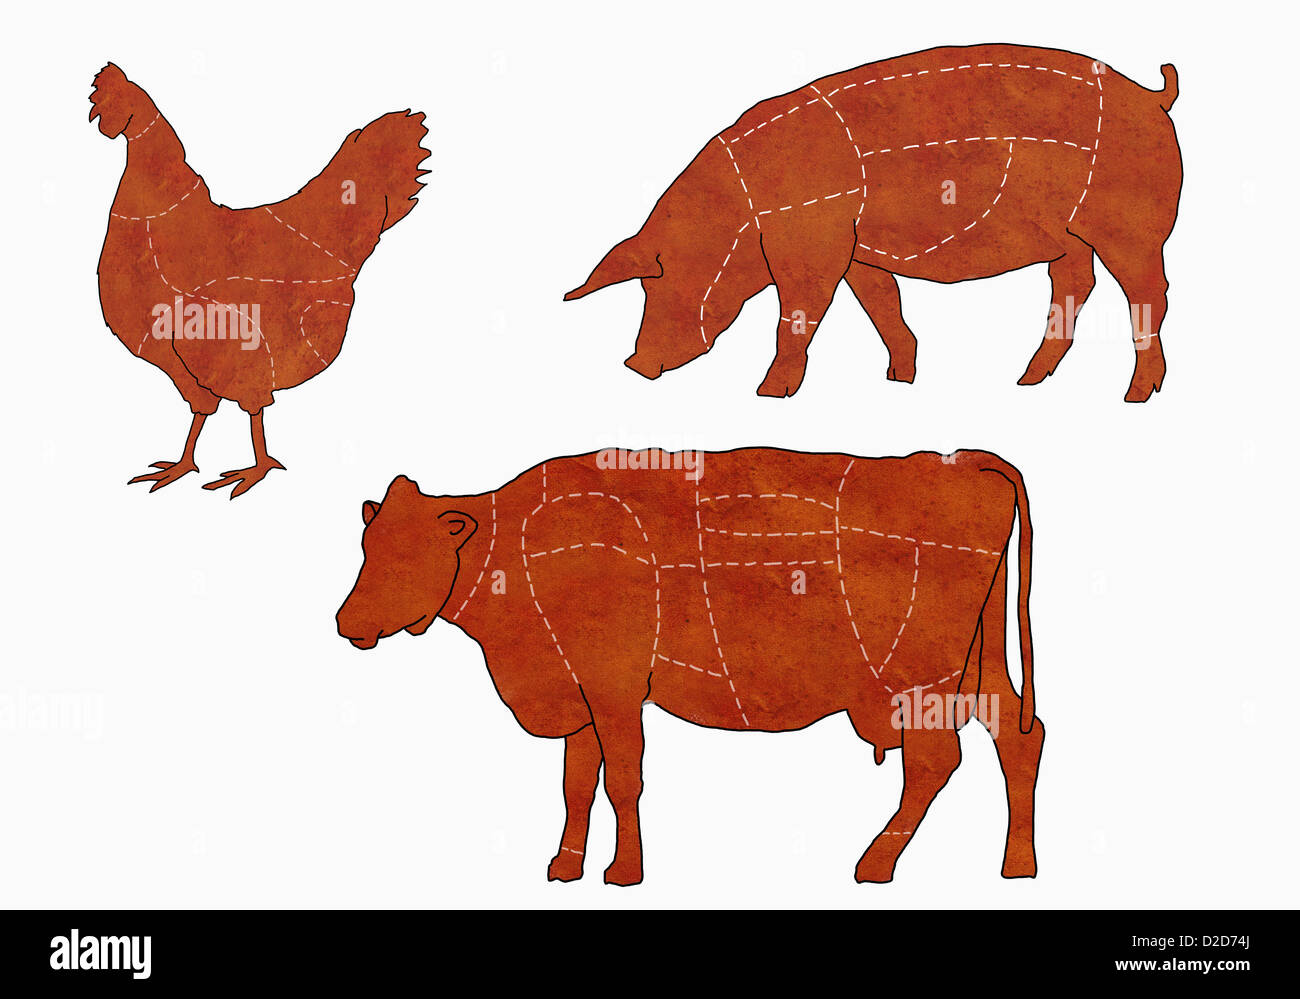 Diagram of cow stock photos diagram of cow stock images alamy a butchers diagram of a cow a chicken and a pig stock image ccuart Gallery